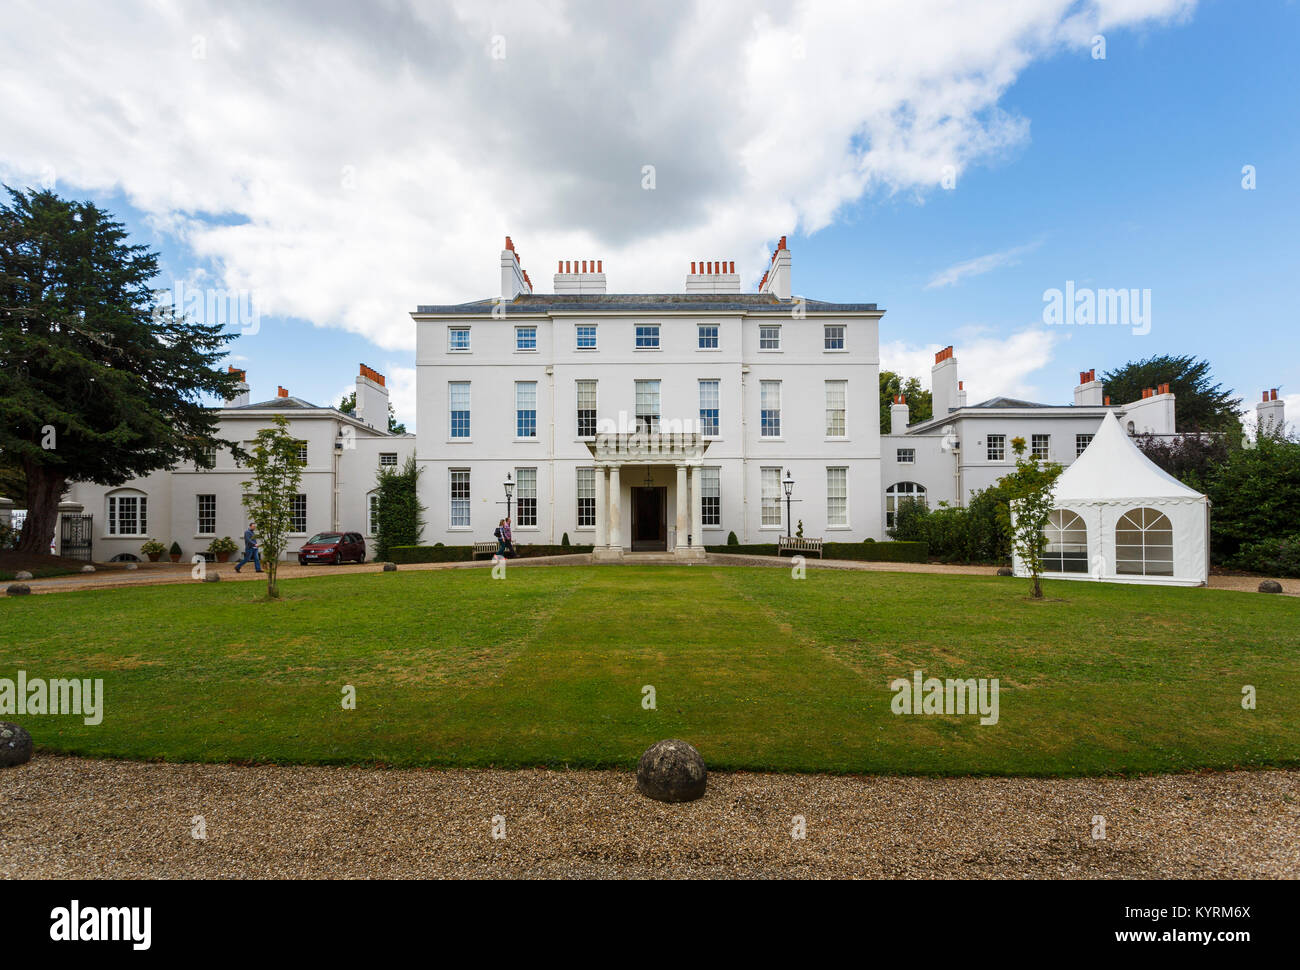 frogmore house stock photos frogmore house stock images alamy. Black Bedroom Furniture Sets. Home Design Ideas